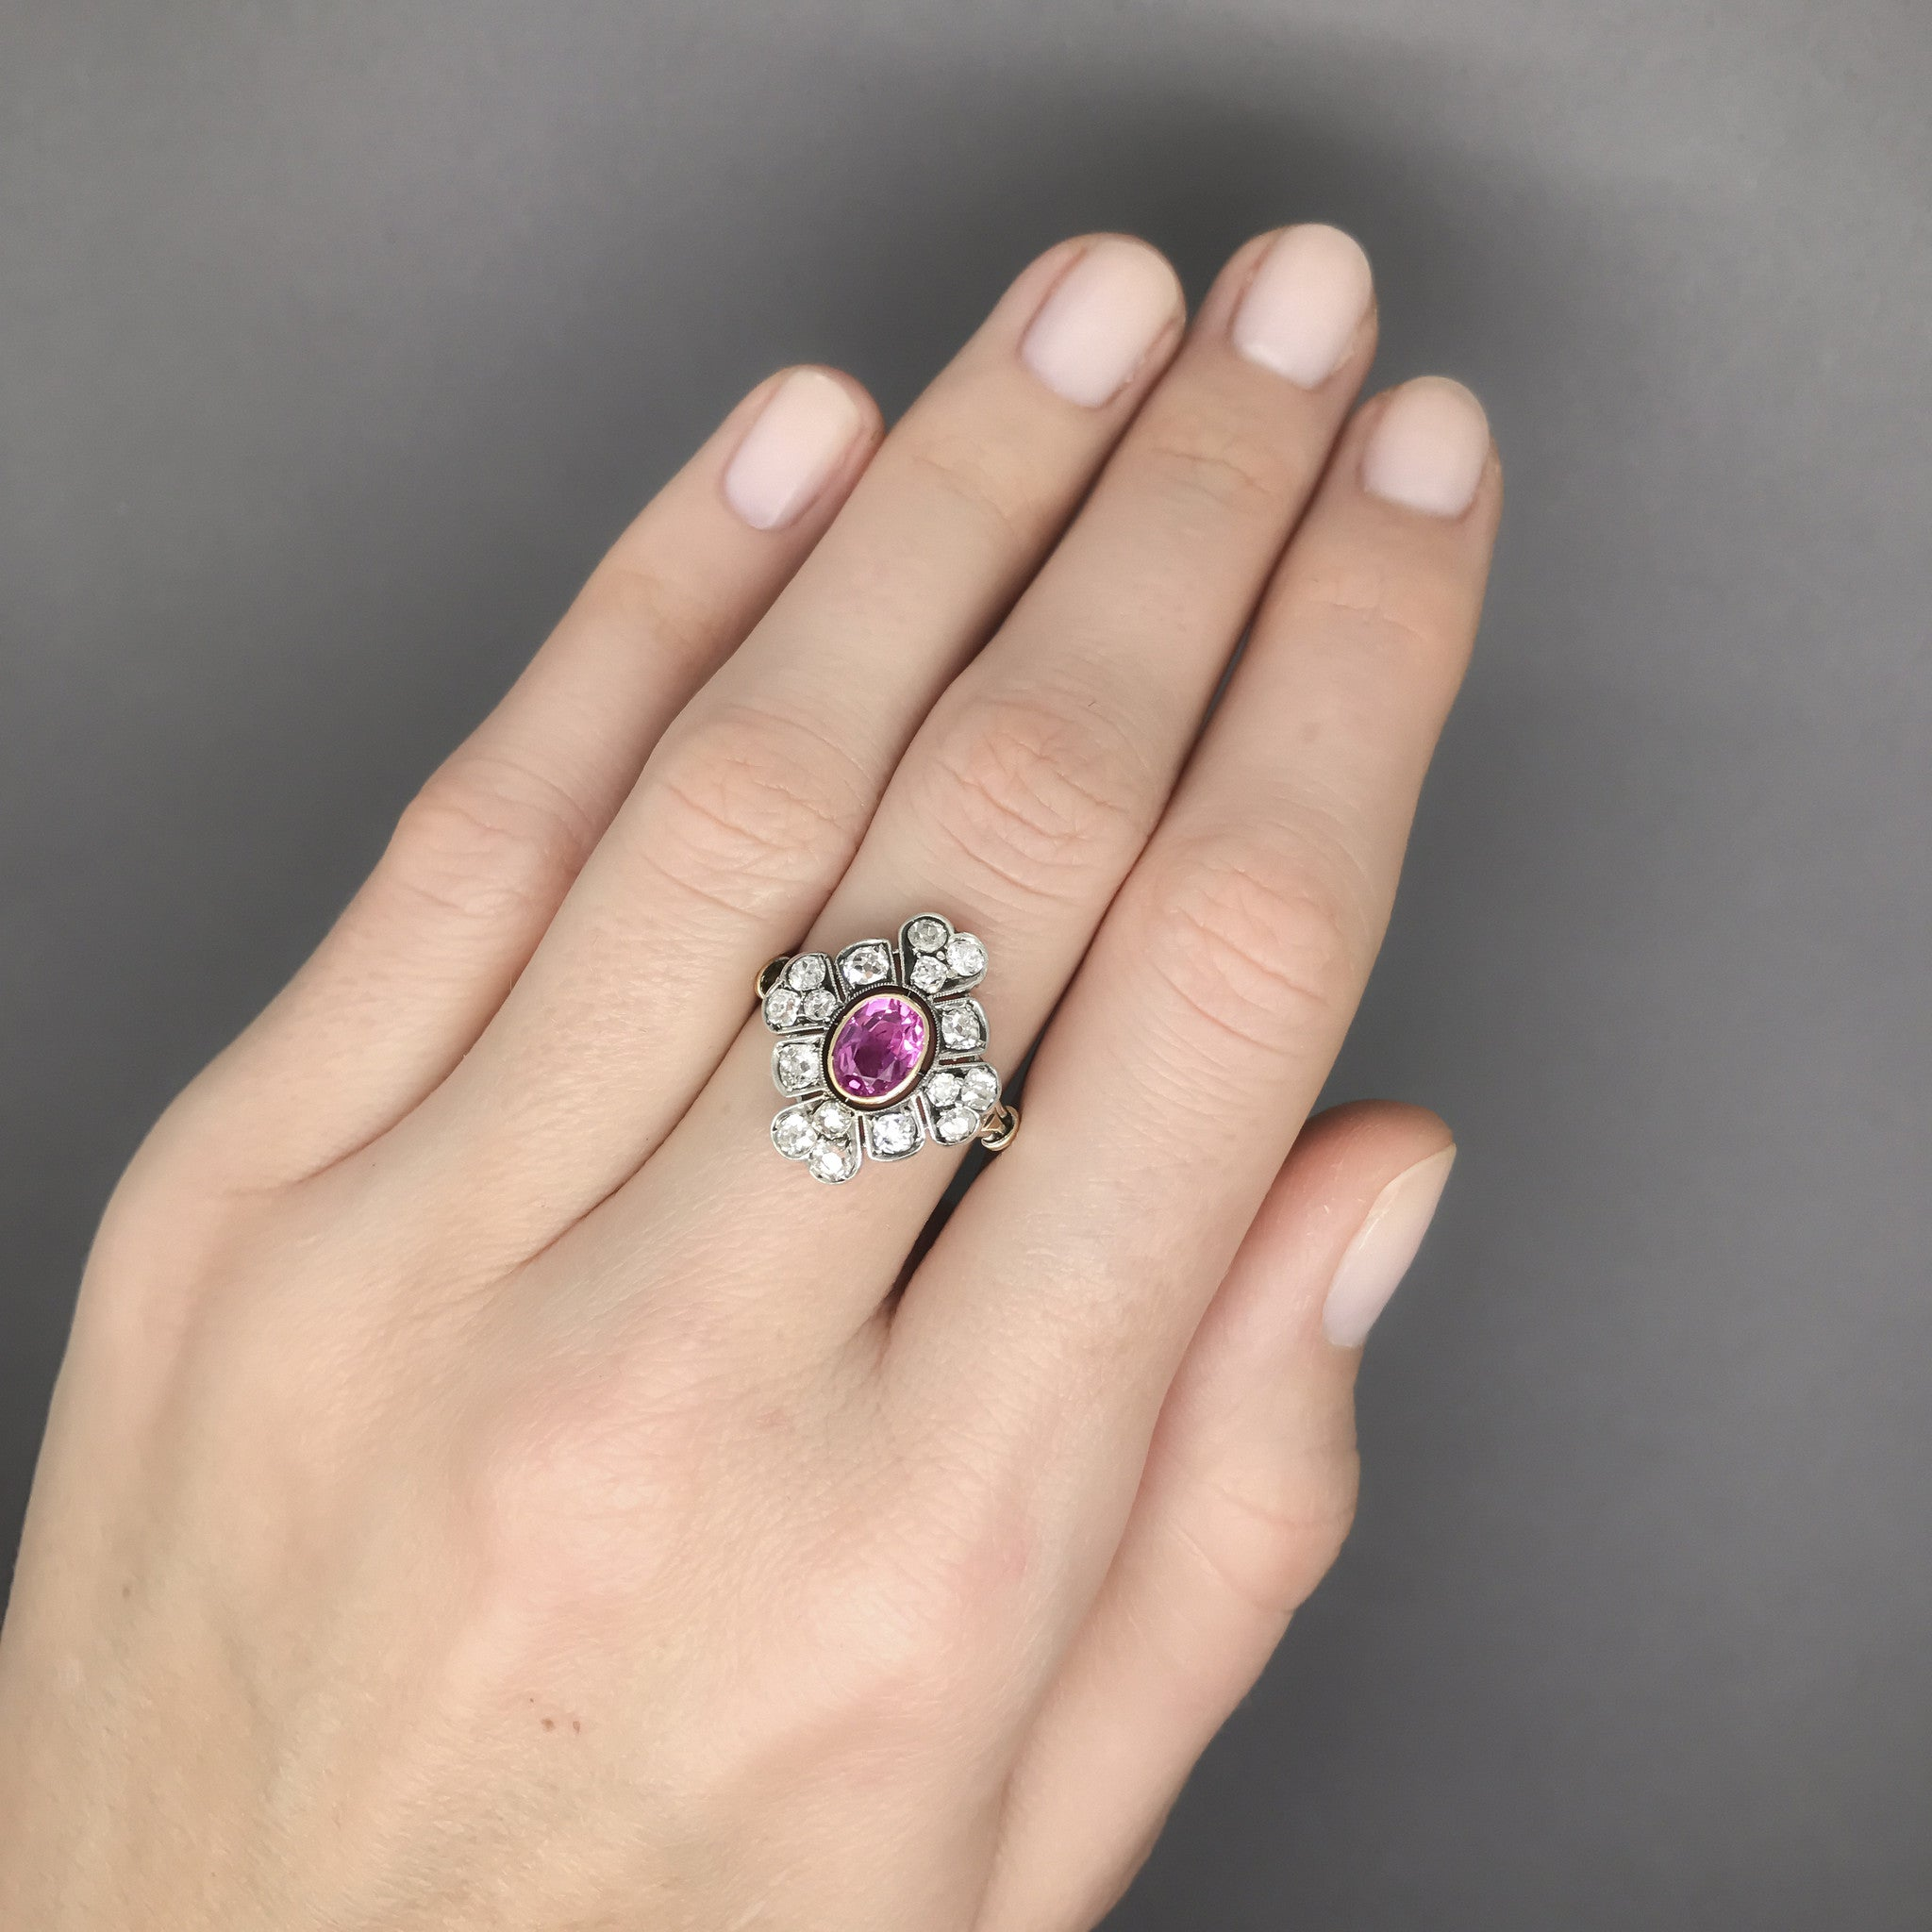 pink emerald stone cut ring rings uneek center carat platinum three engagement with diamond